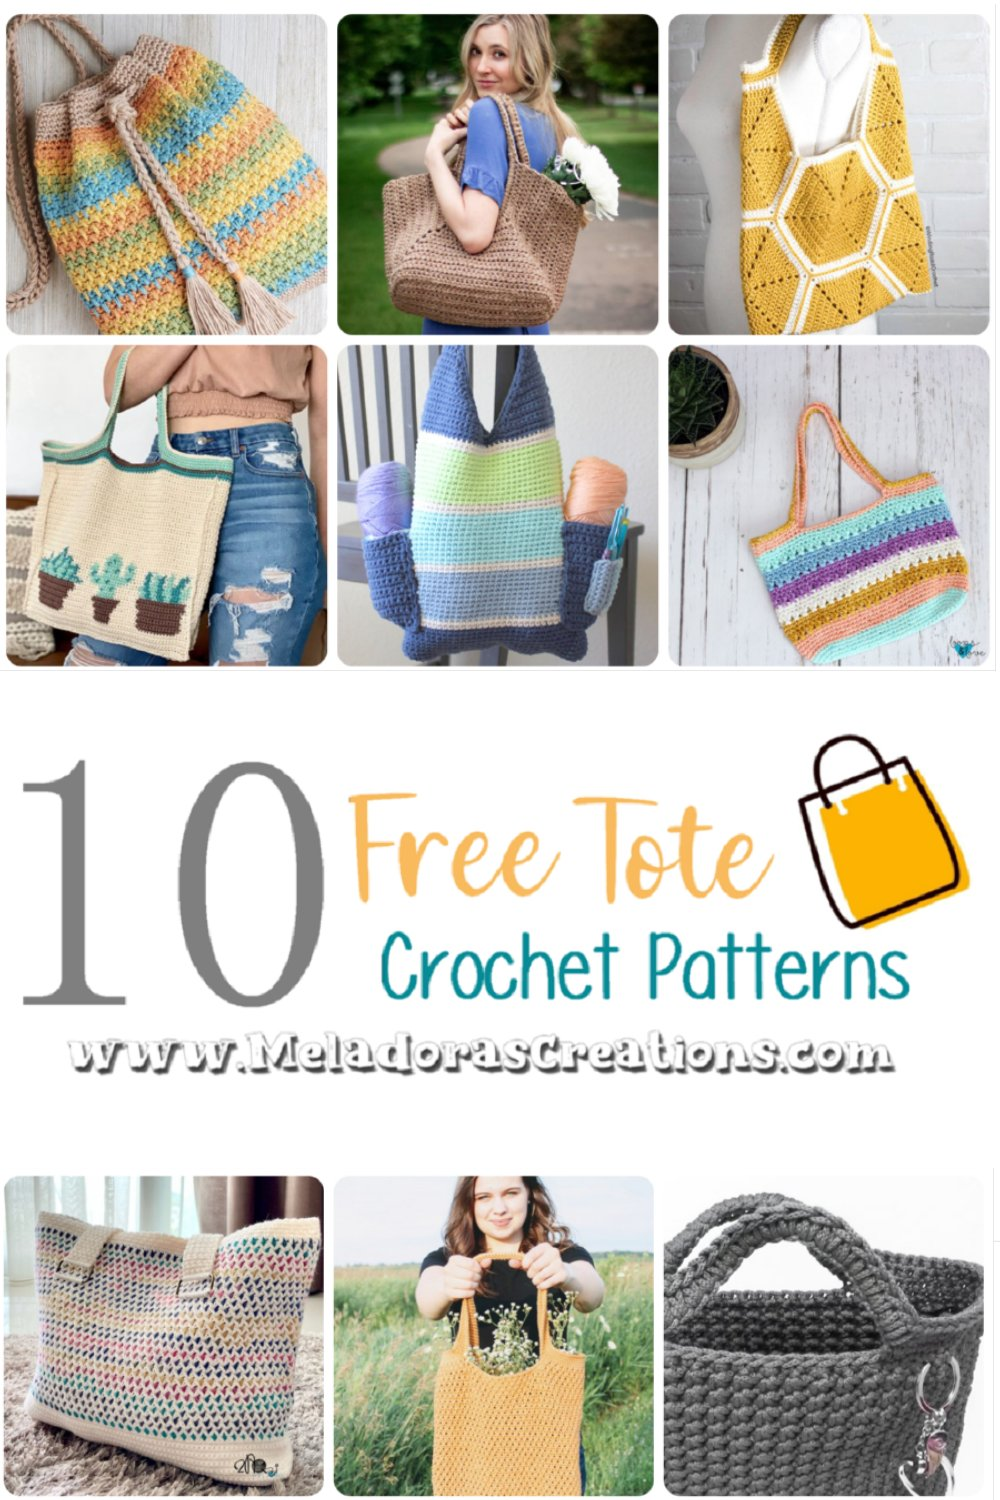 10 Free Tote Bag Crochet Pattern Round up